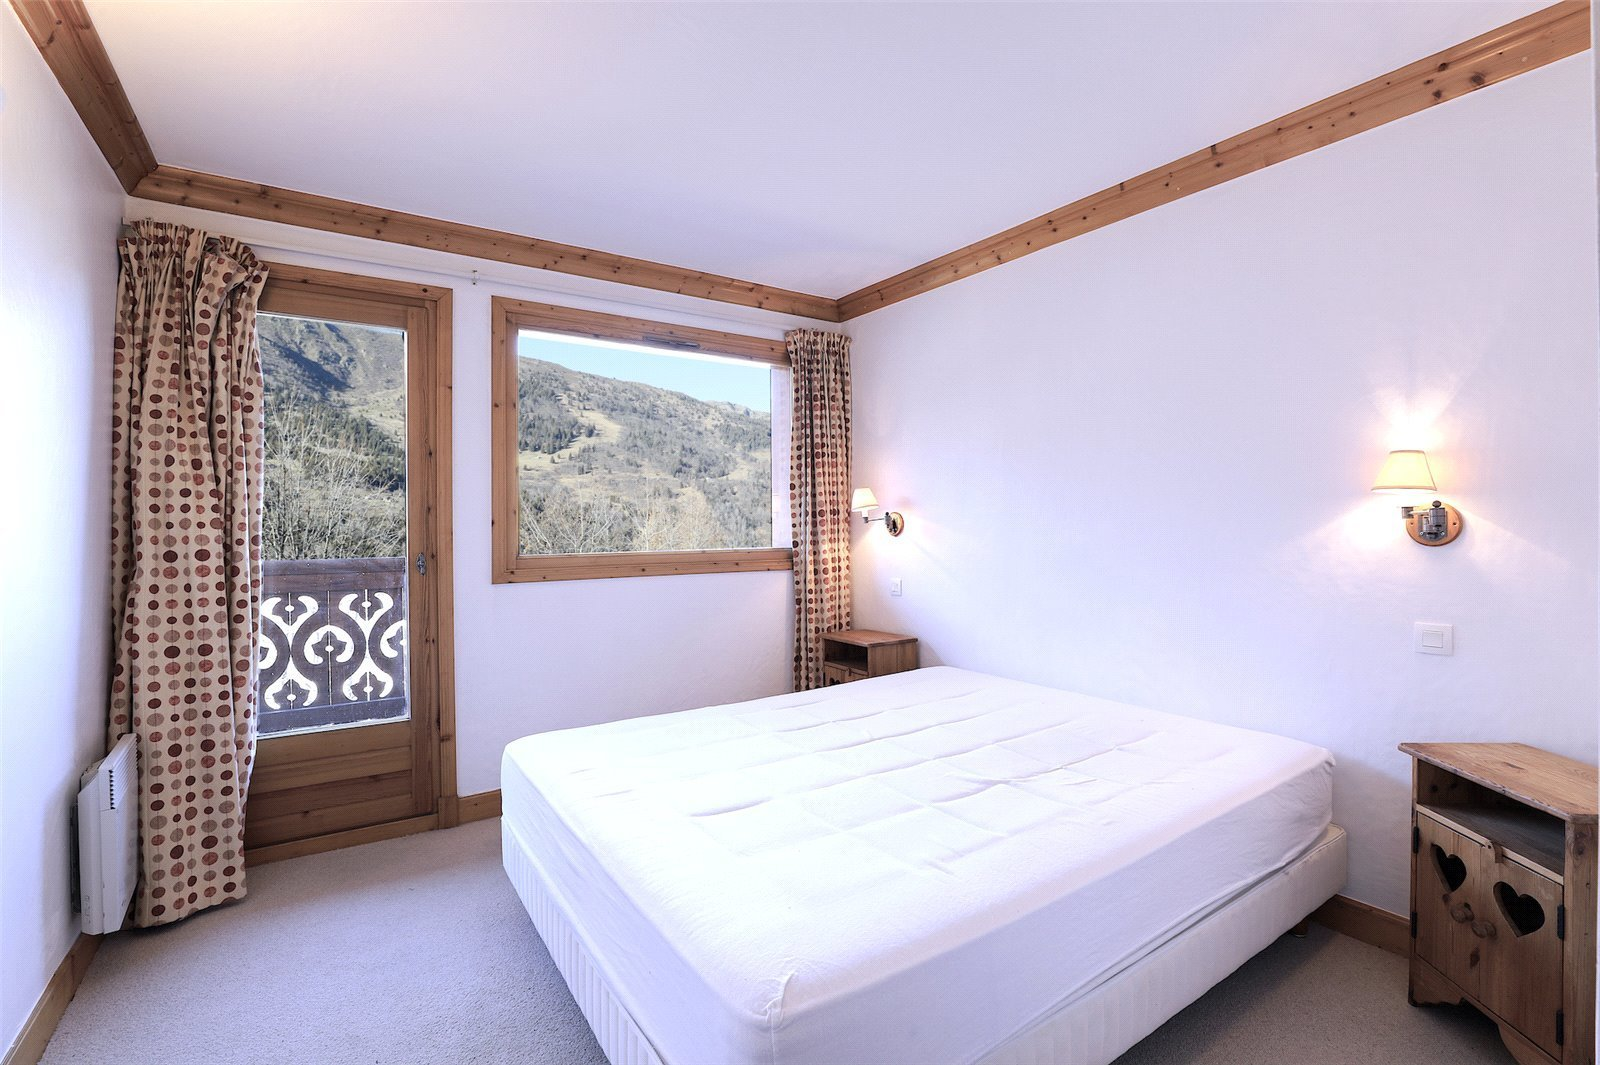 Buying Villa Méribel Sole agent. Superb chalet with 7 bedrooms and open mountain views, ideally placed for the centre of the resort.